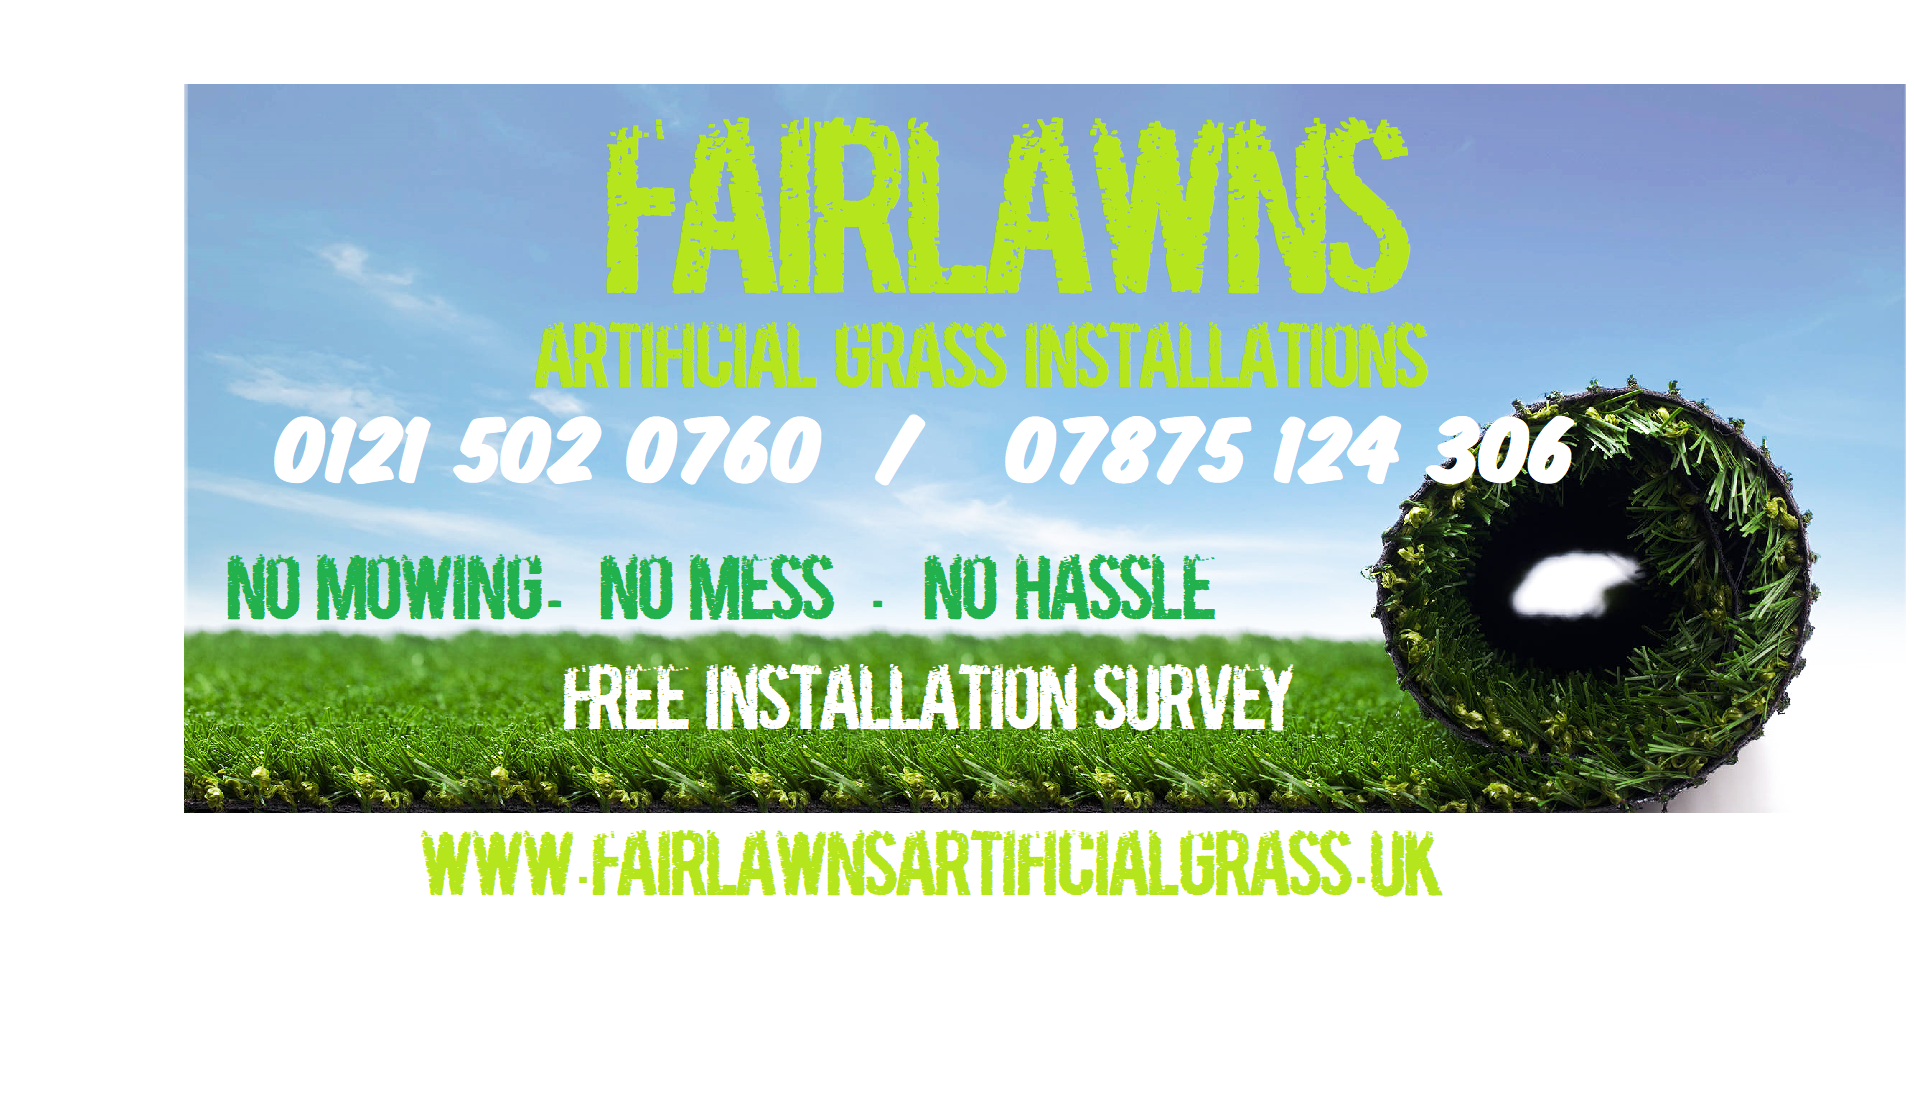 Fairlawns Artificial Grass